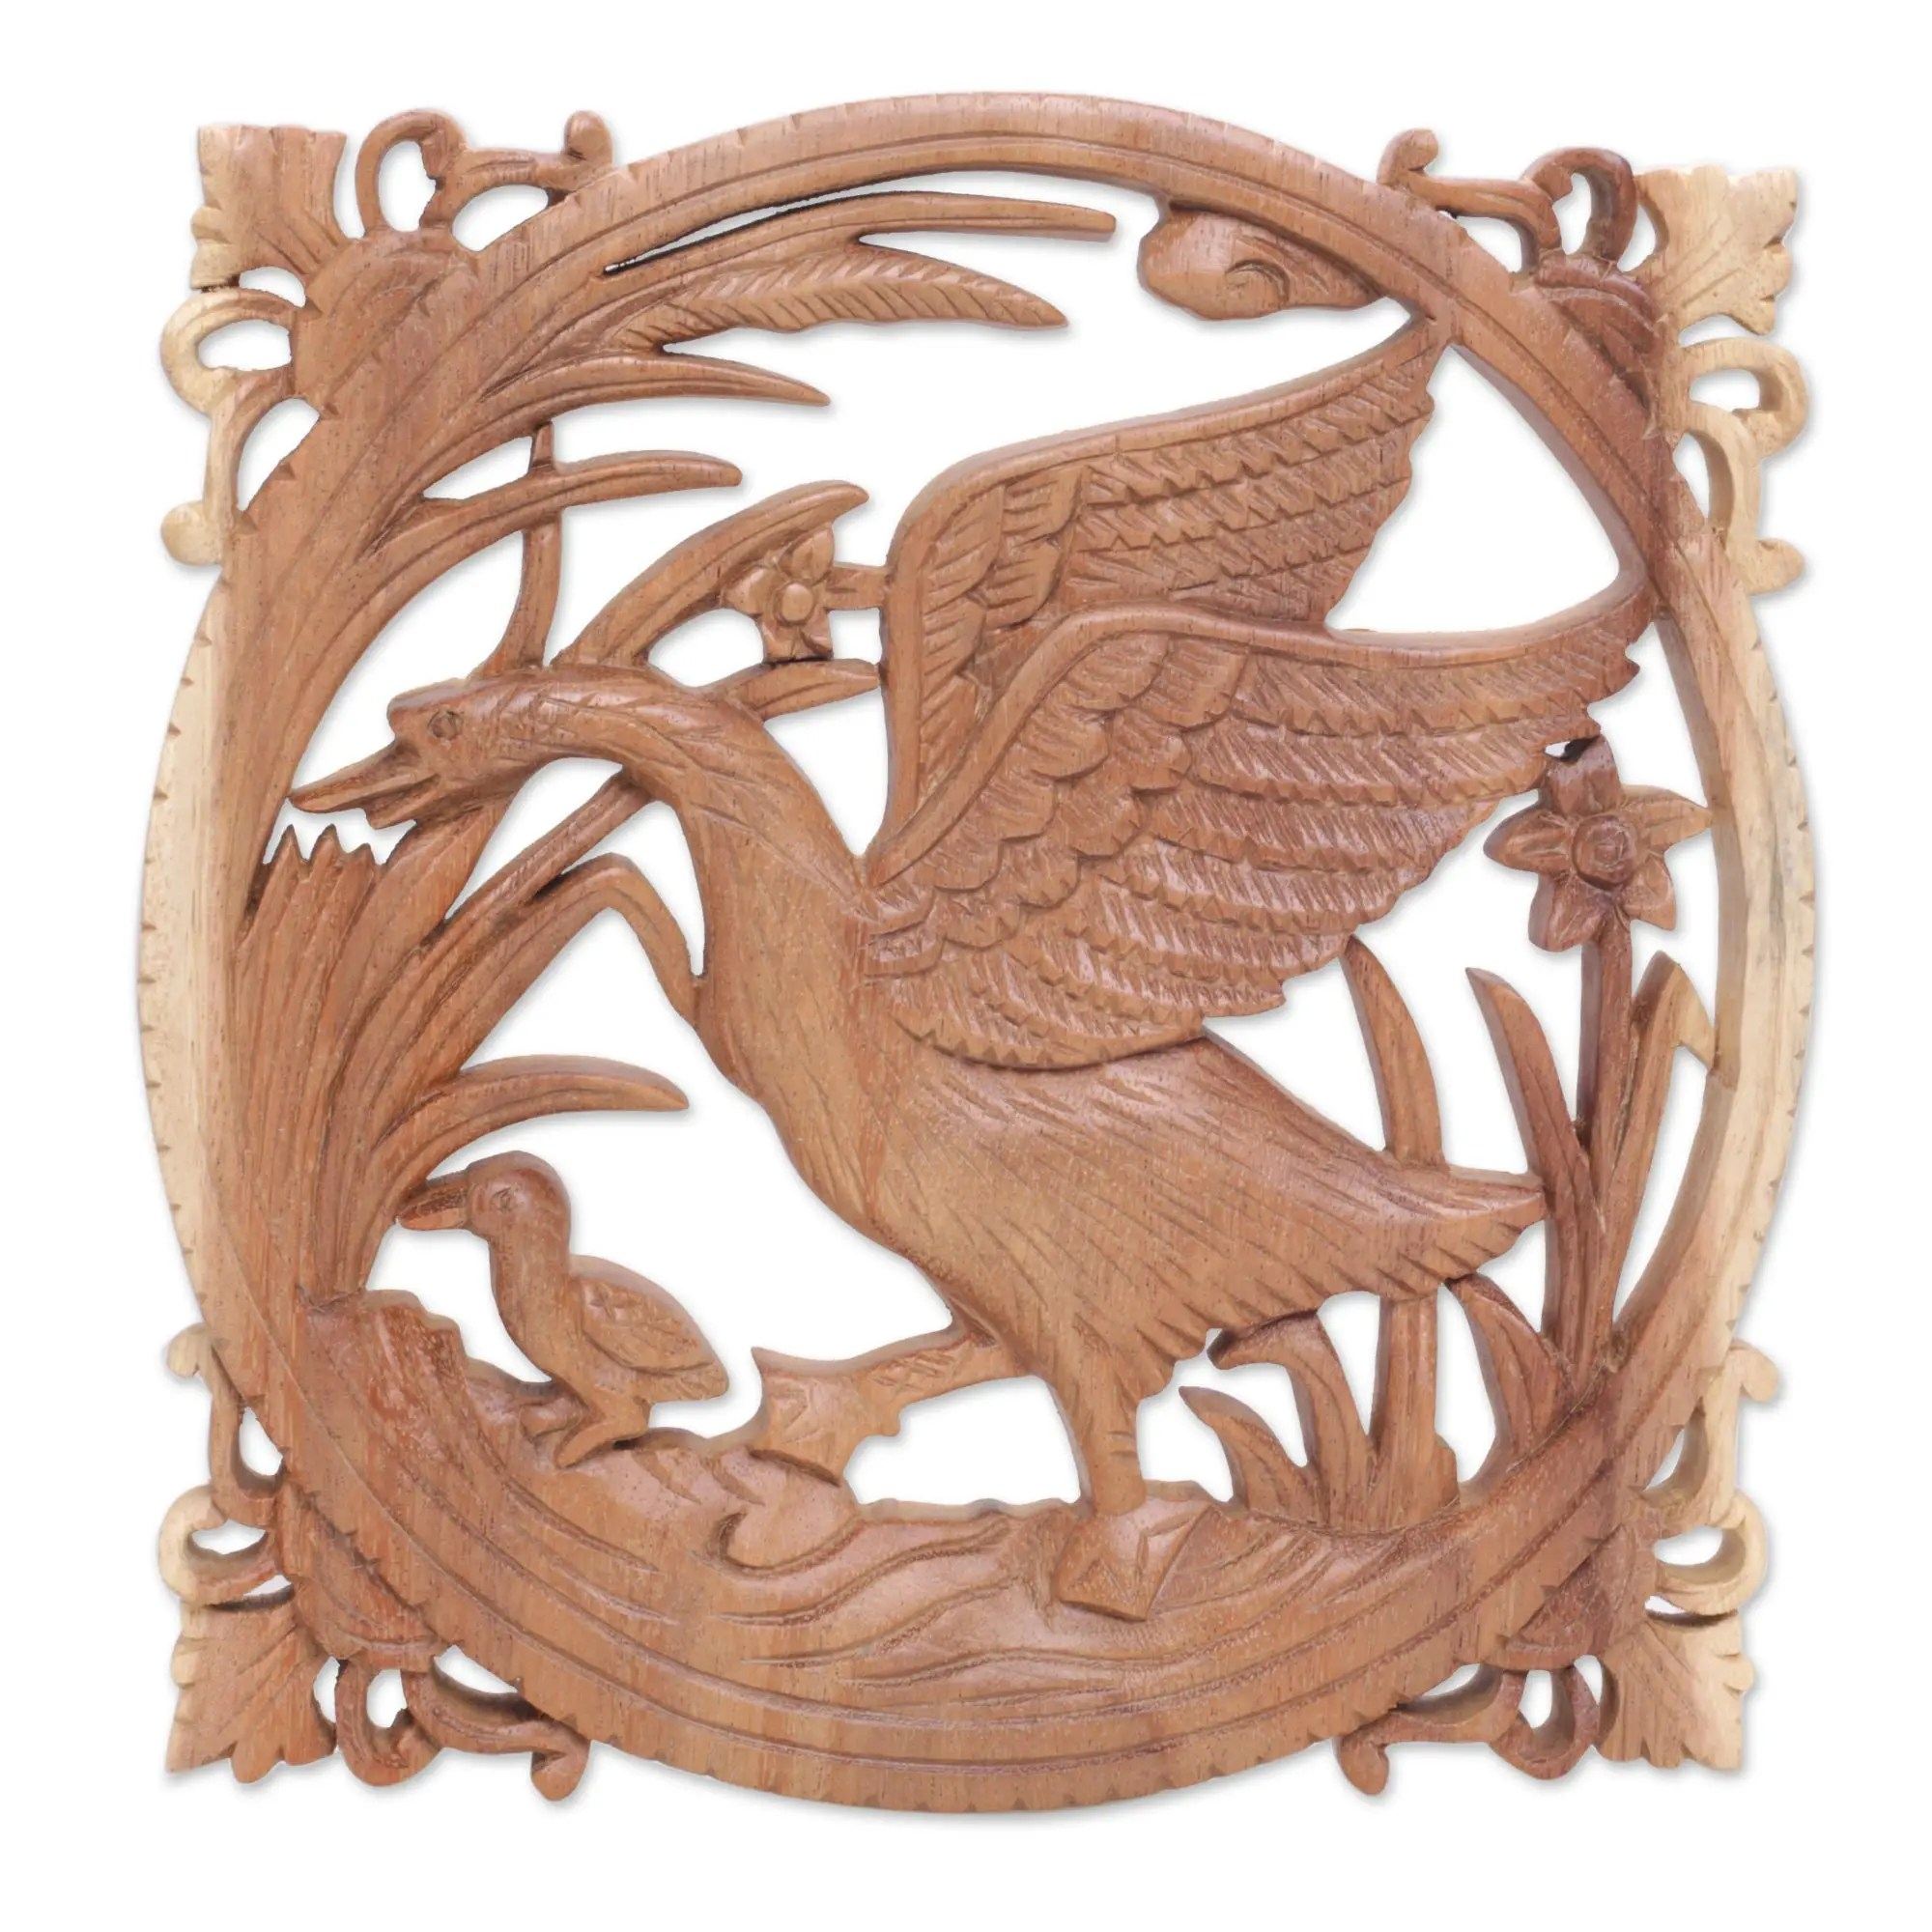 Motif Relief Handmade Wood Wall Relief Panel With Goose Motif From Bali Mother Goose